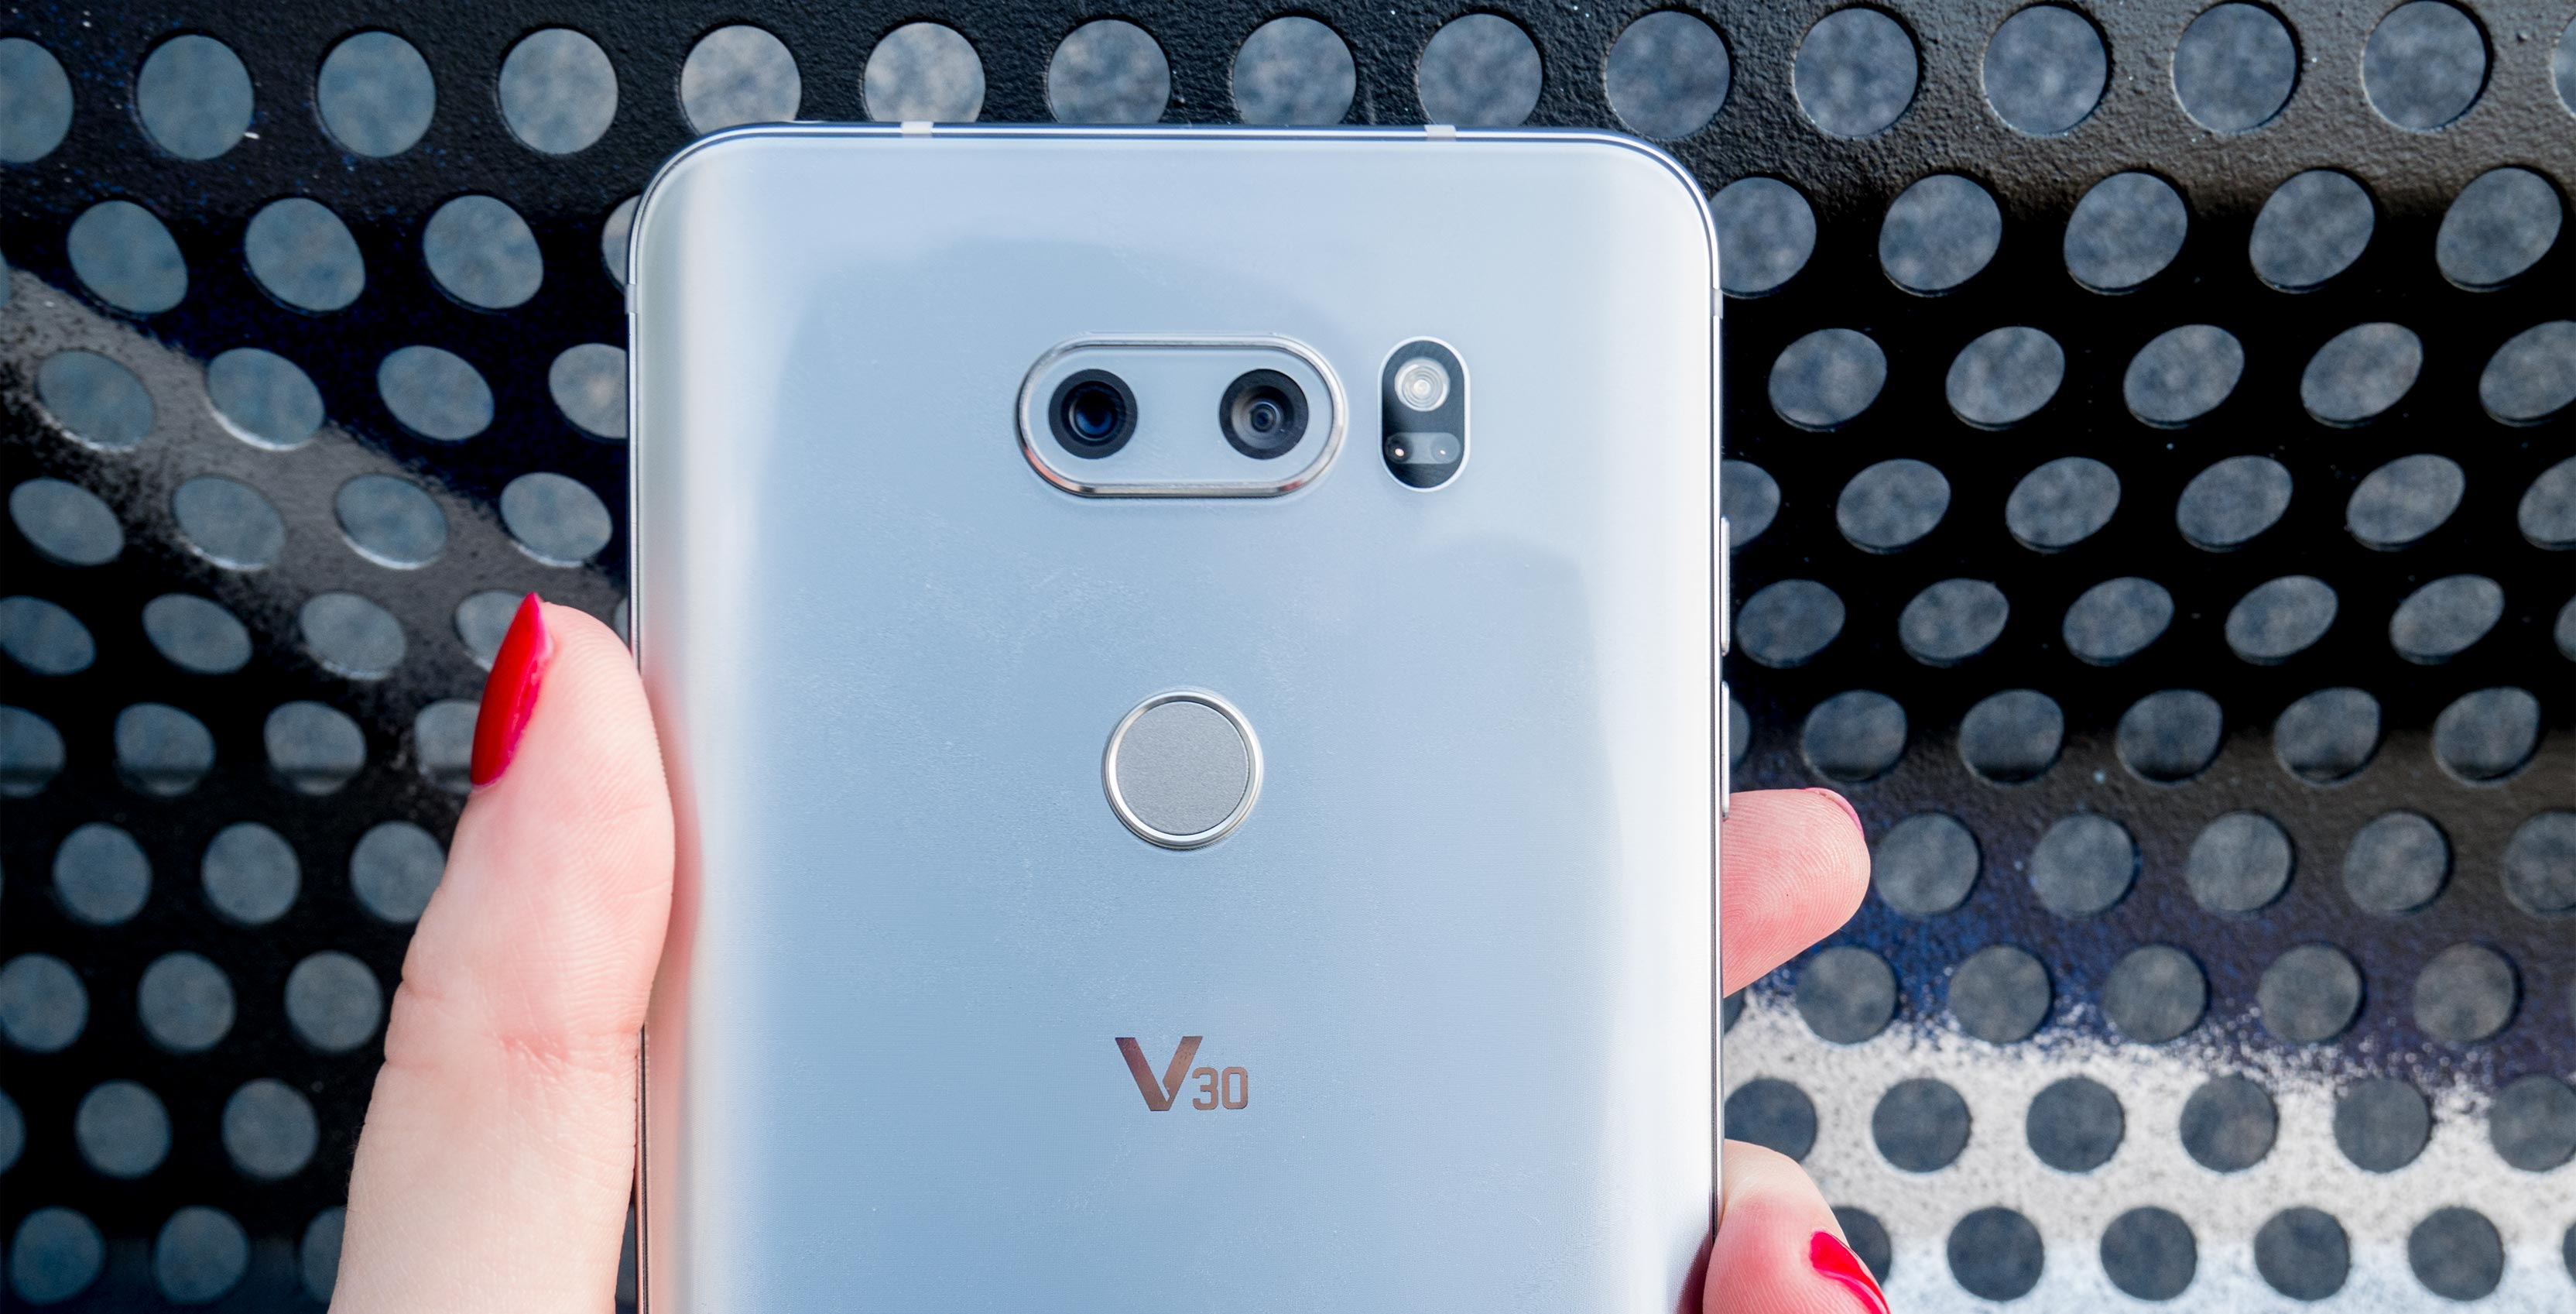 The V40 ThinQ (Storm) could be LG's fourth flagship phone of 2018